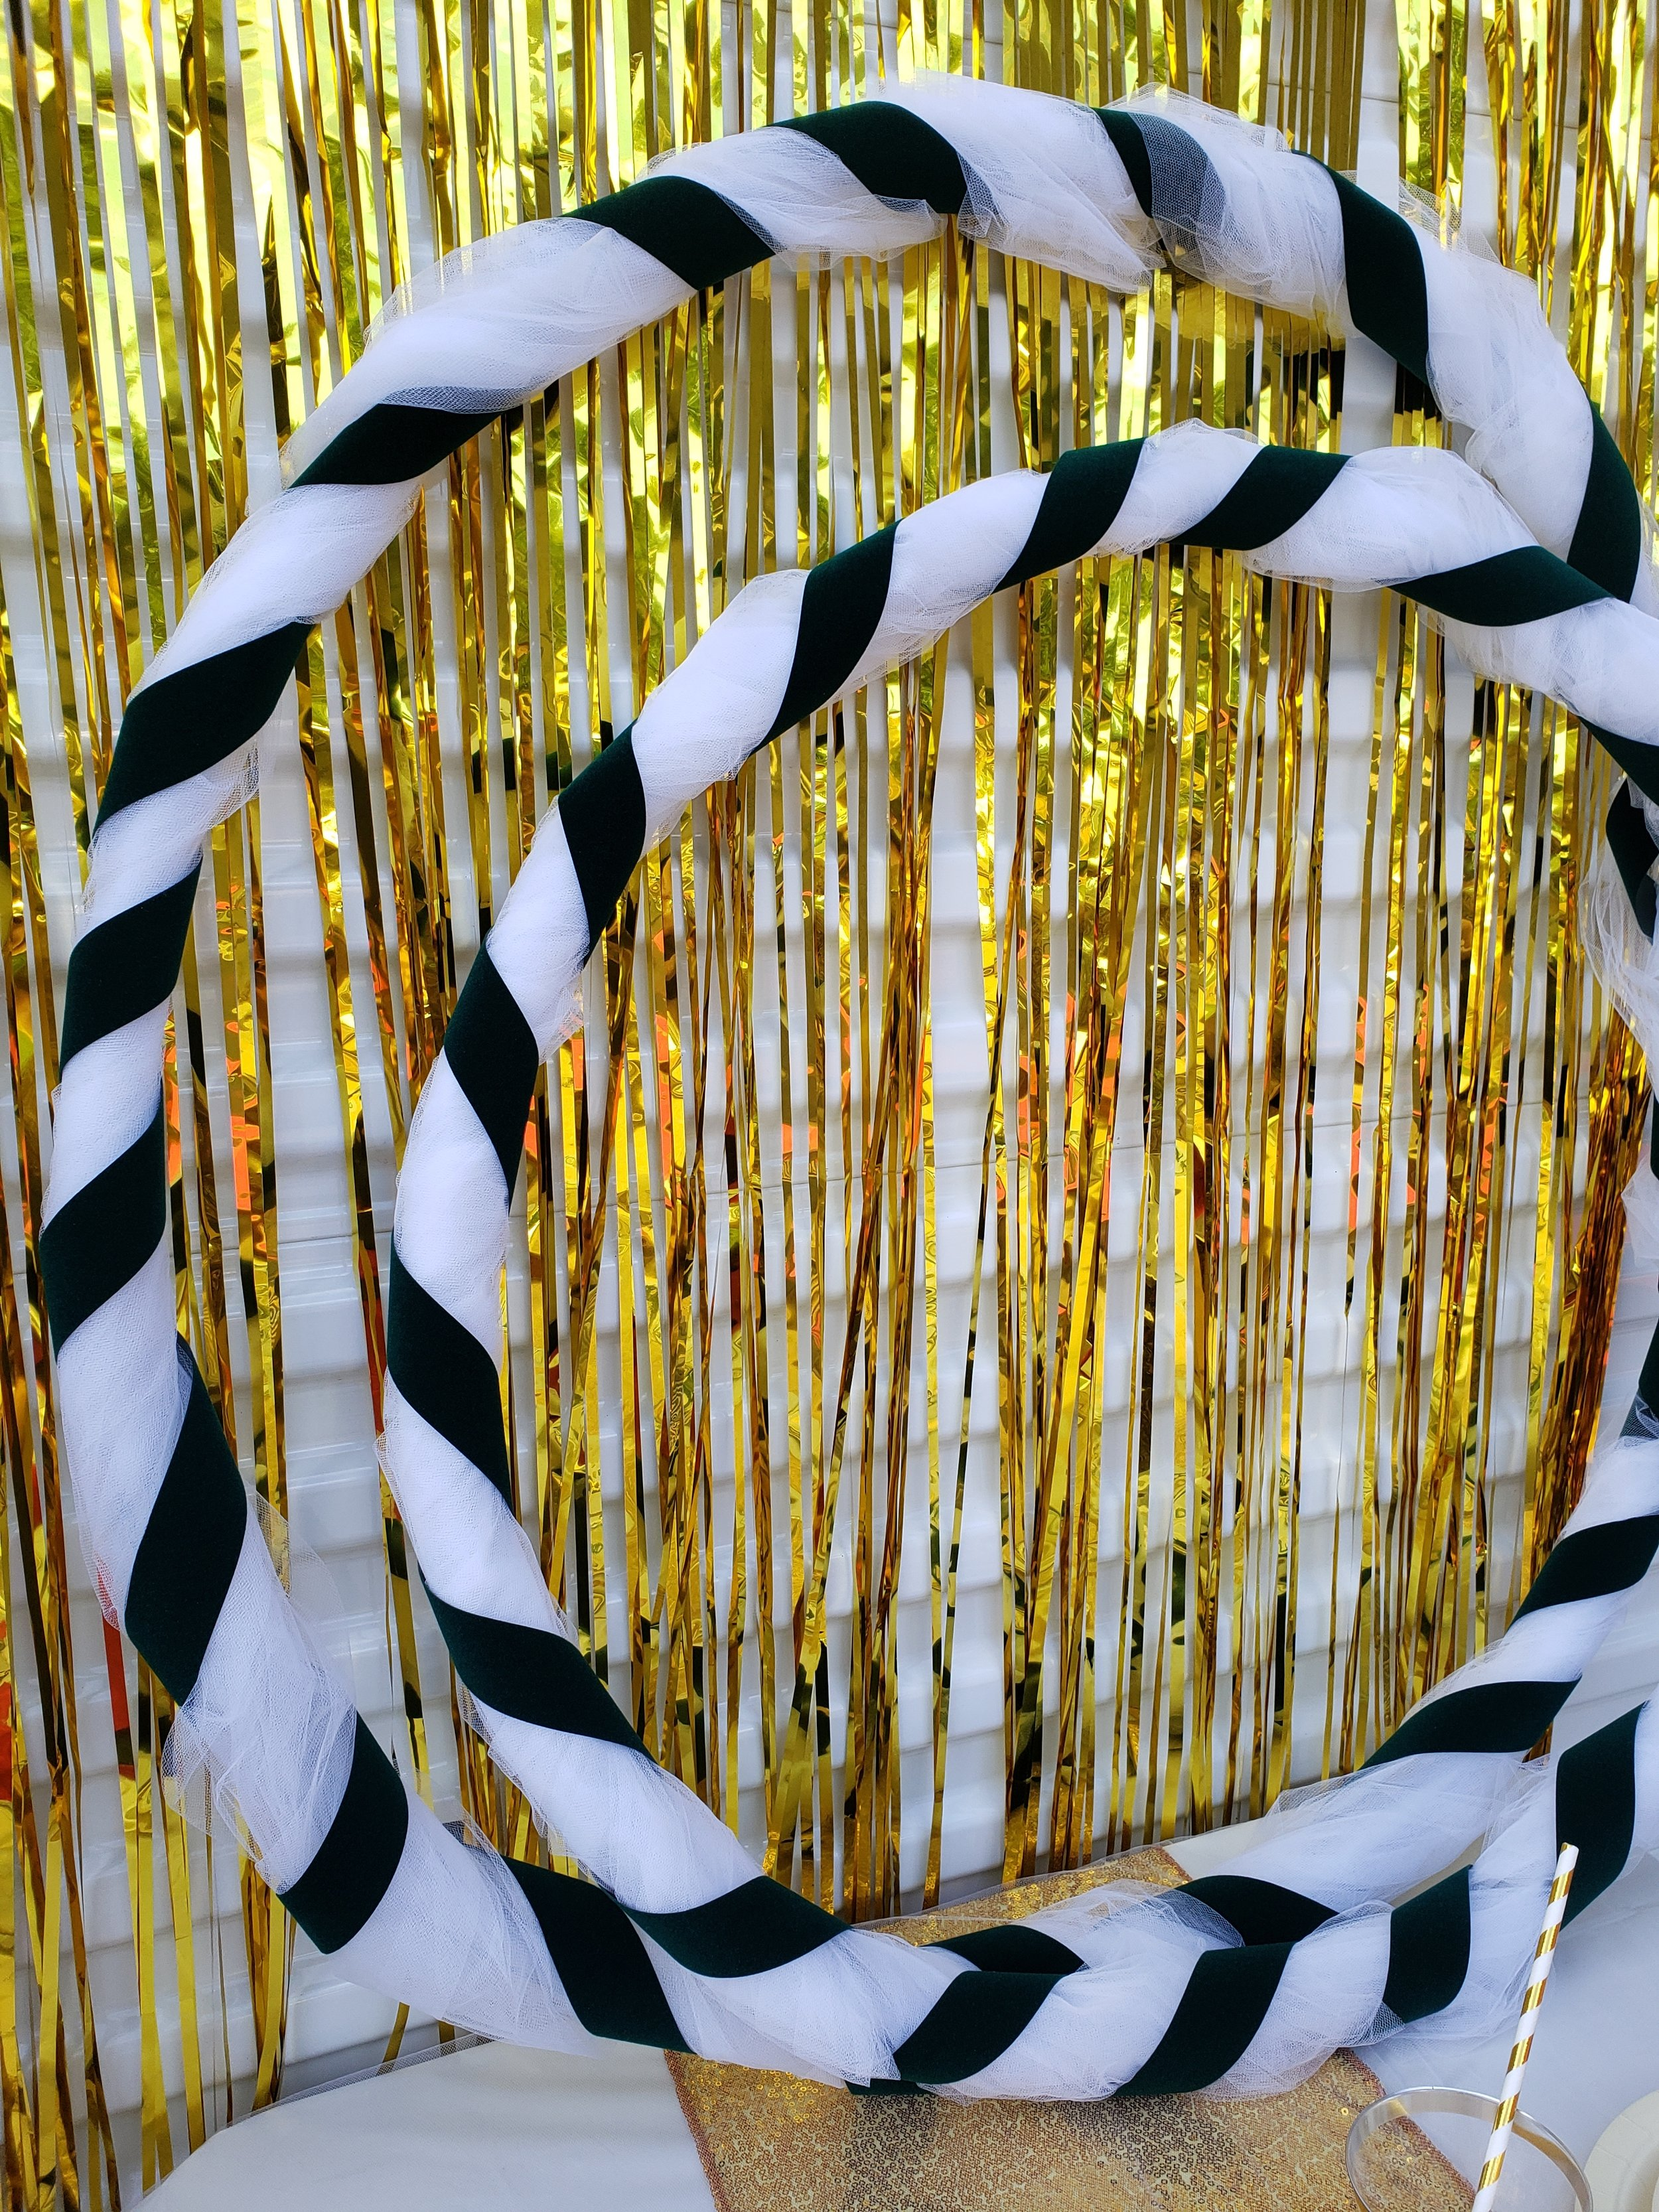 DIY hoola hoops! Wrap 2 sizes of hoola hoops with tulle then wrap ribbon around that. We used green velvet ribbon but any ribbon would work.